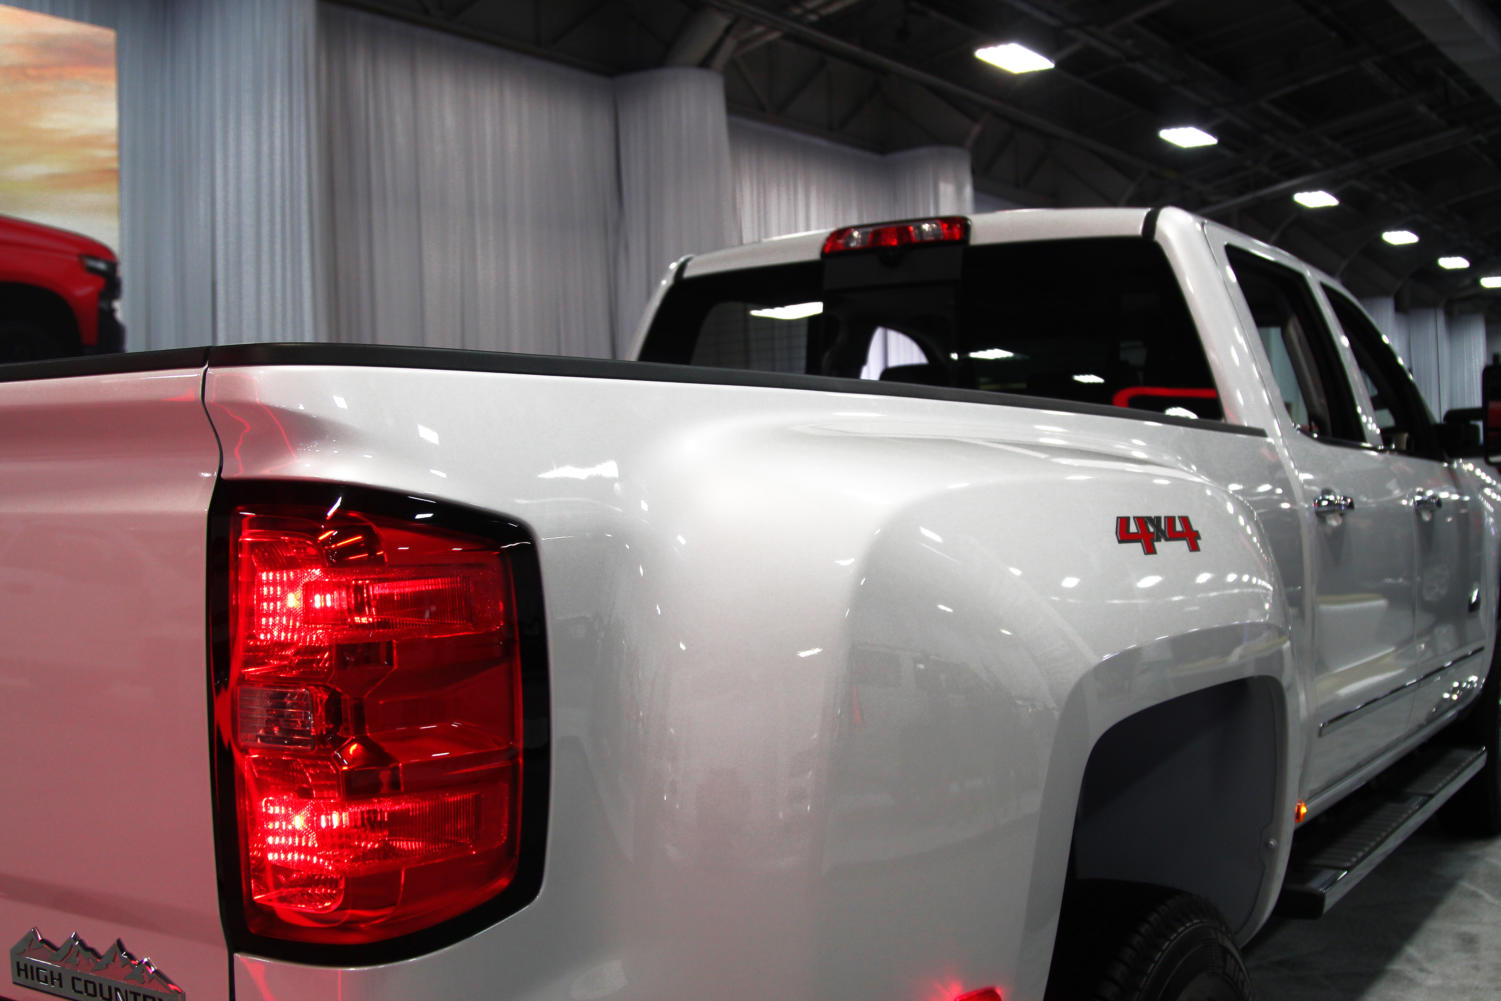 The+2019+Chevrolet+Silverado+1500+has+the+largest+pickup+bed+made+up+of+a+higher-grade+steel.